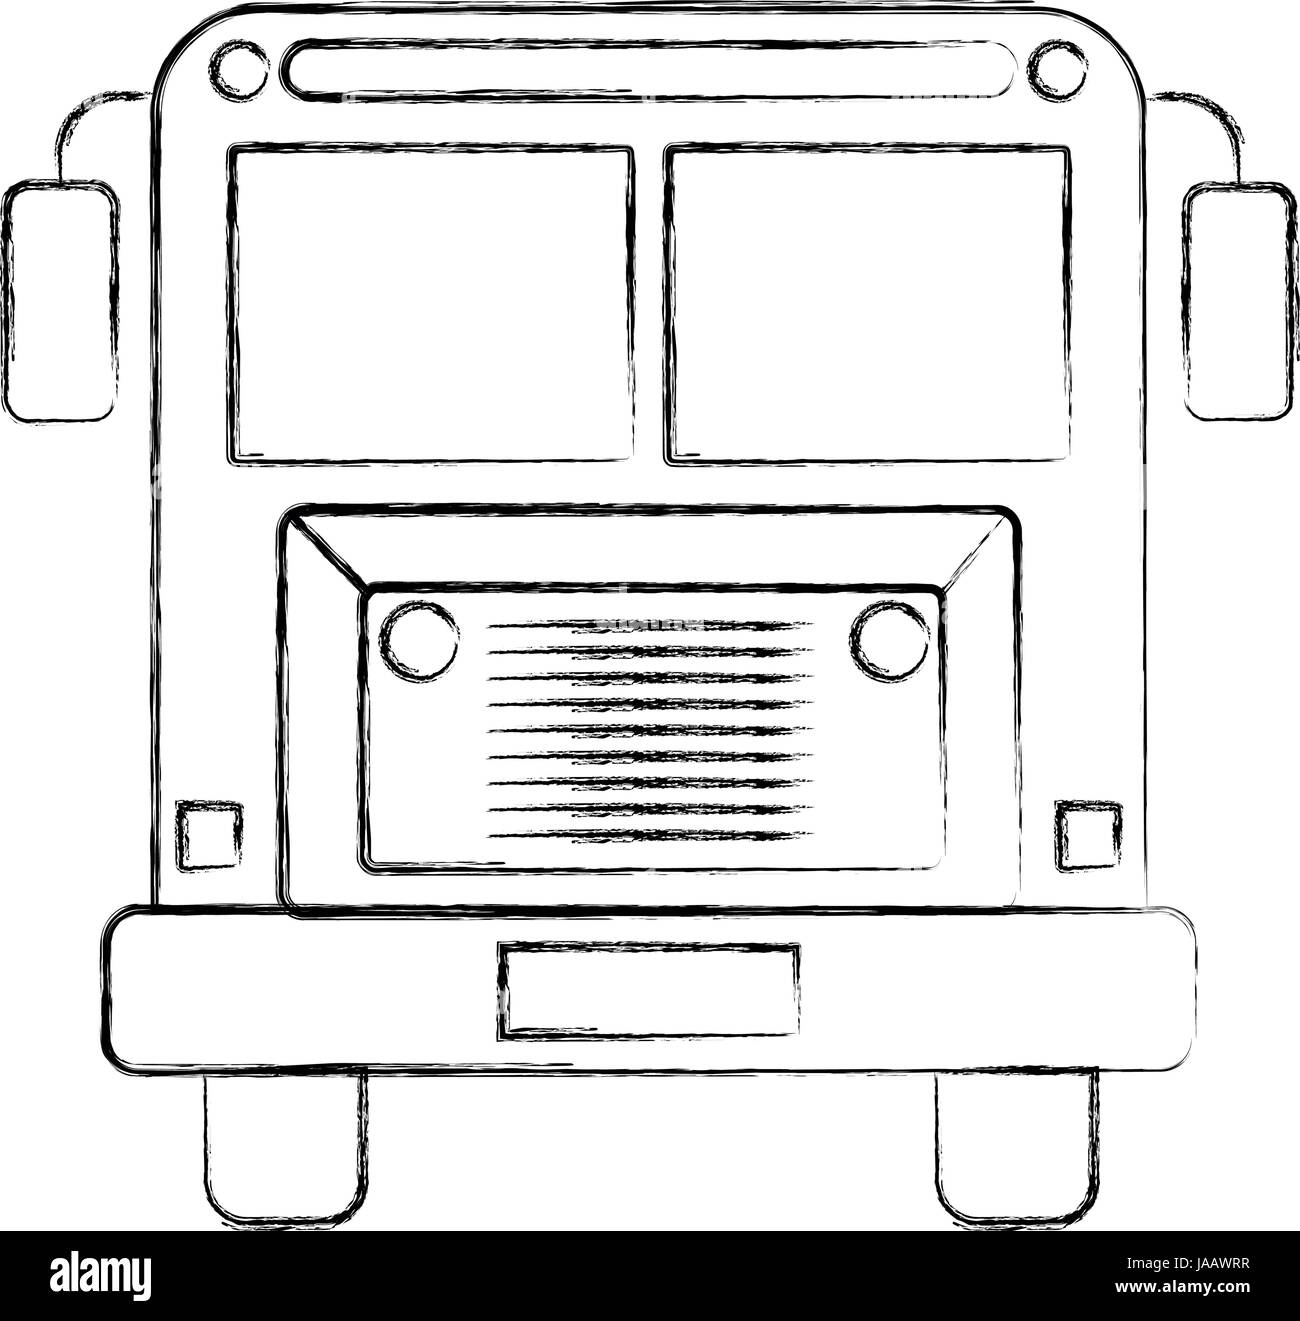 sketch blurred silhouette image front view school bus with ...